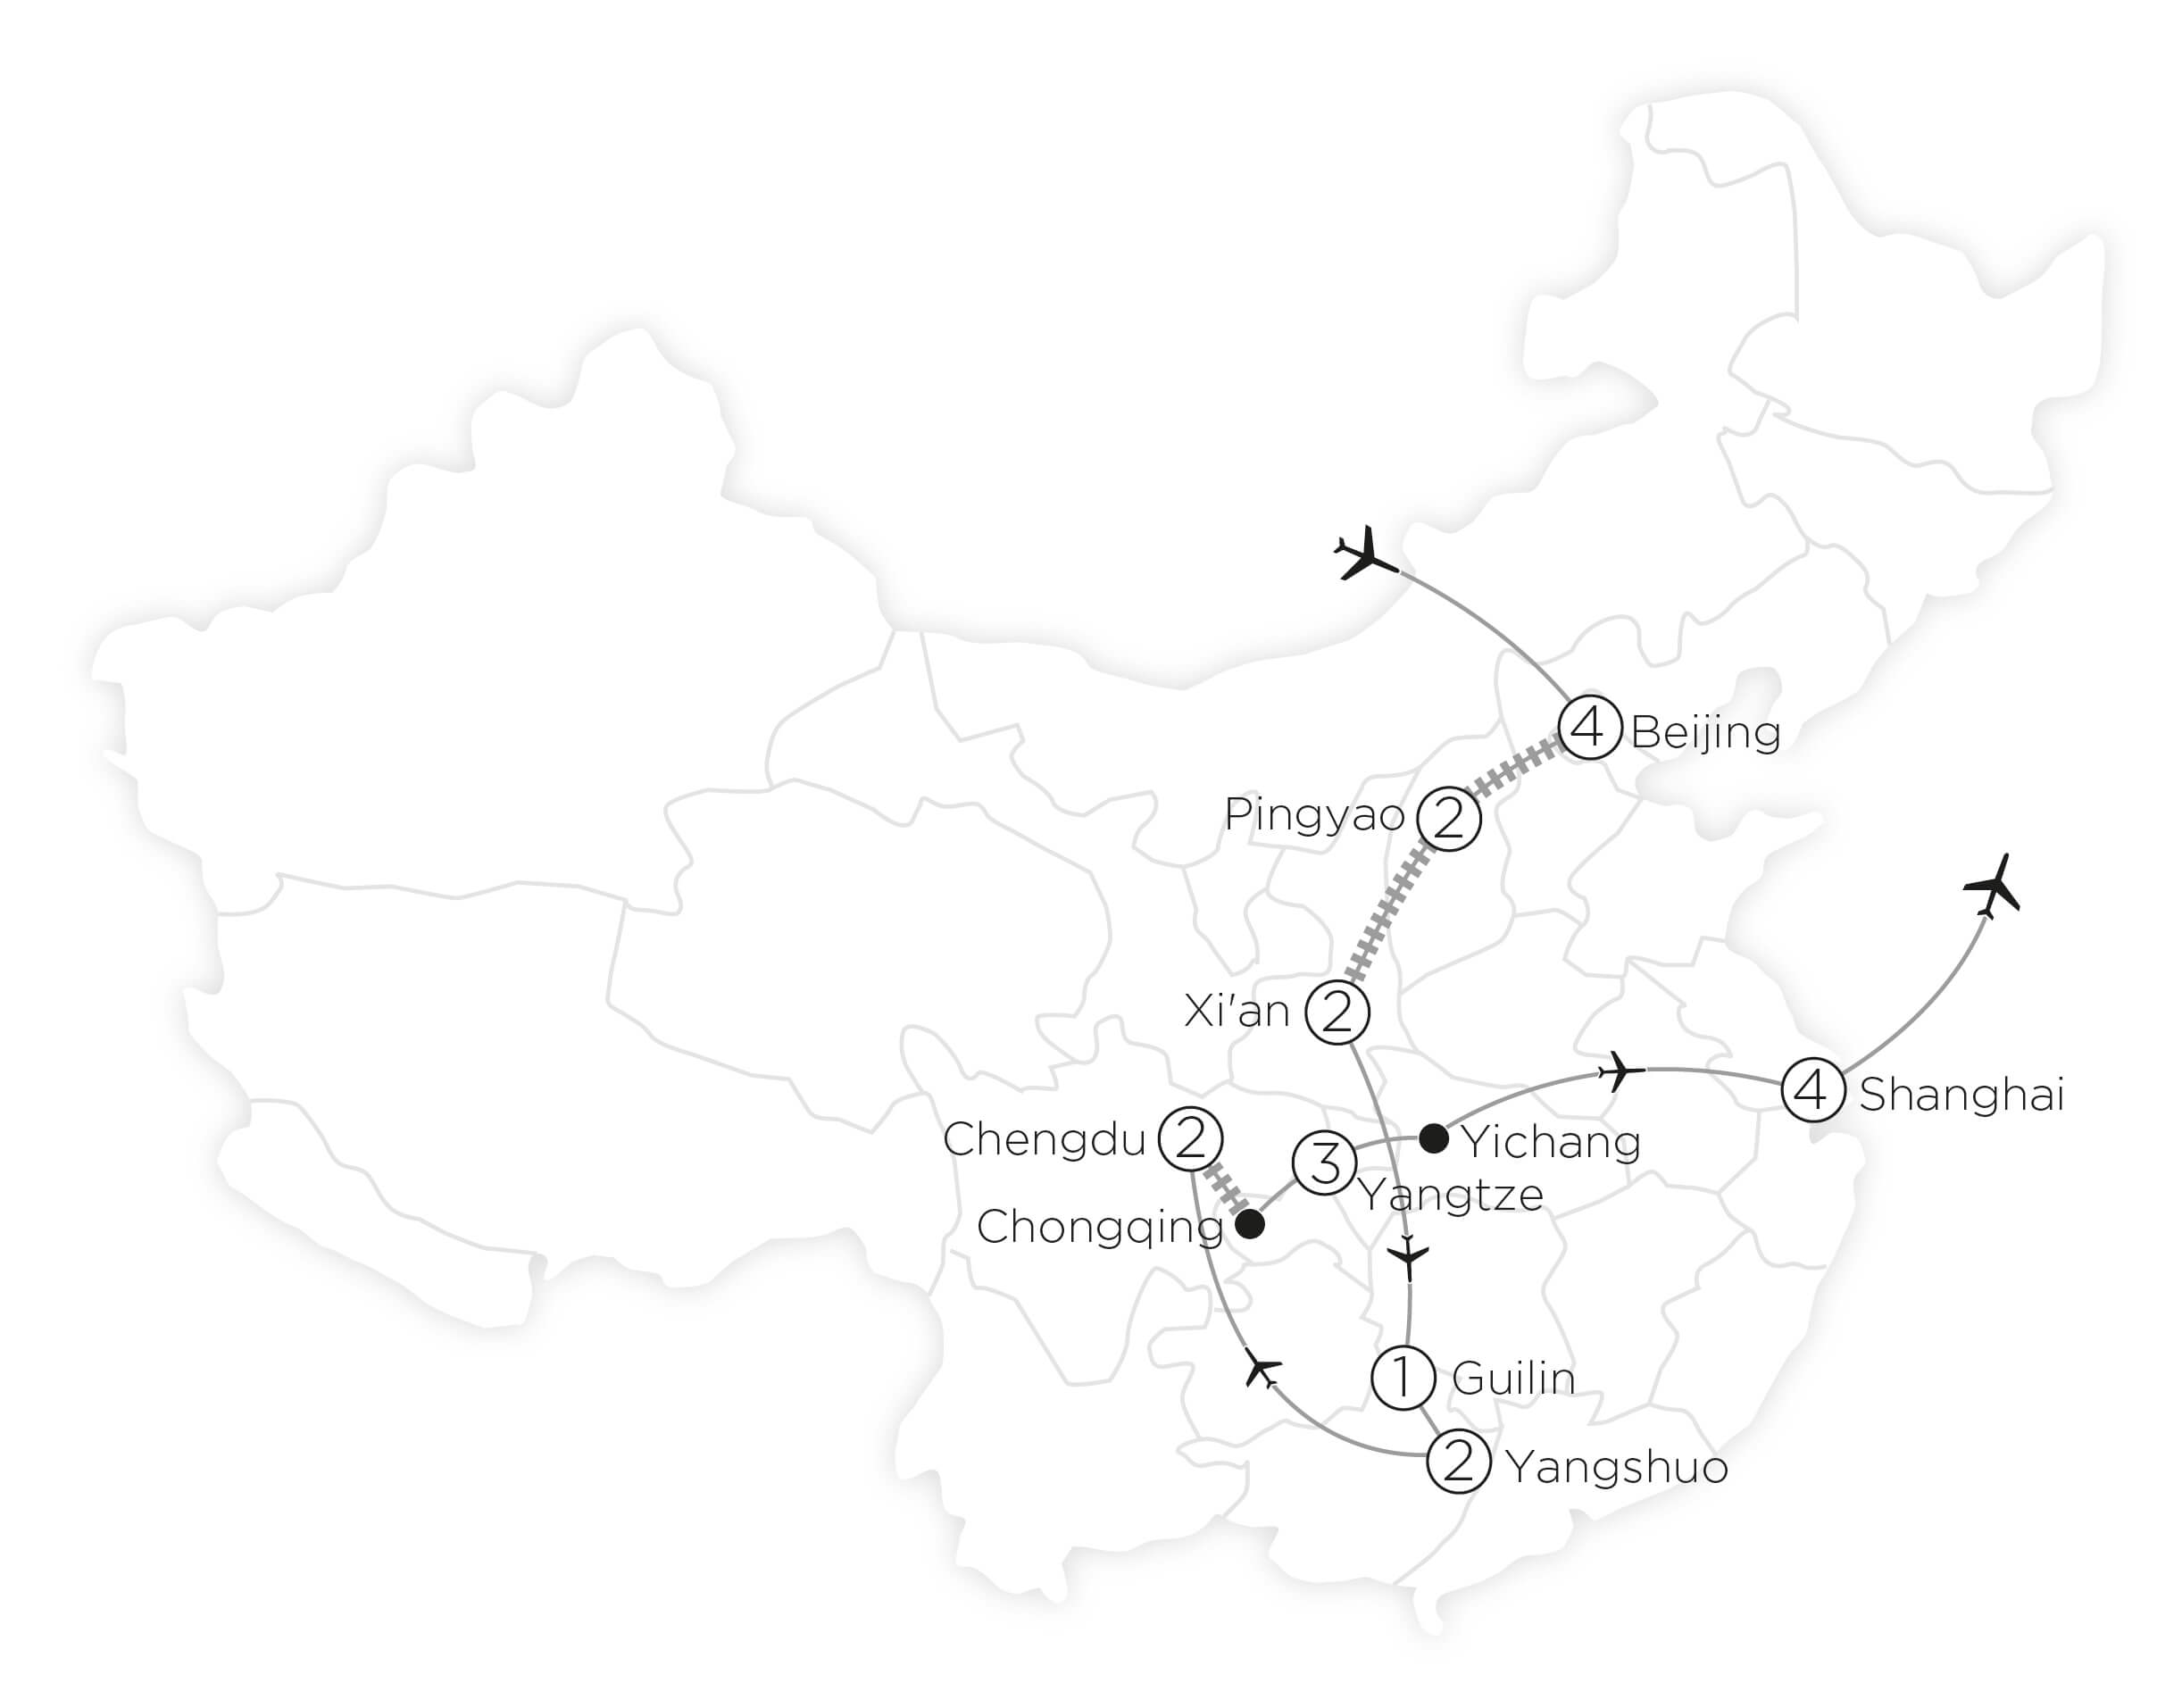 The Very Best of China tour map 2019_20